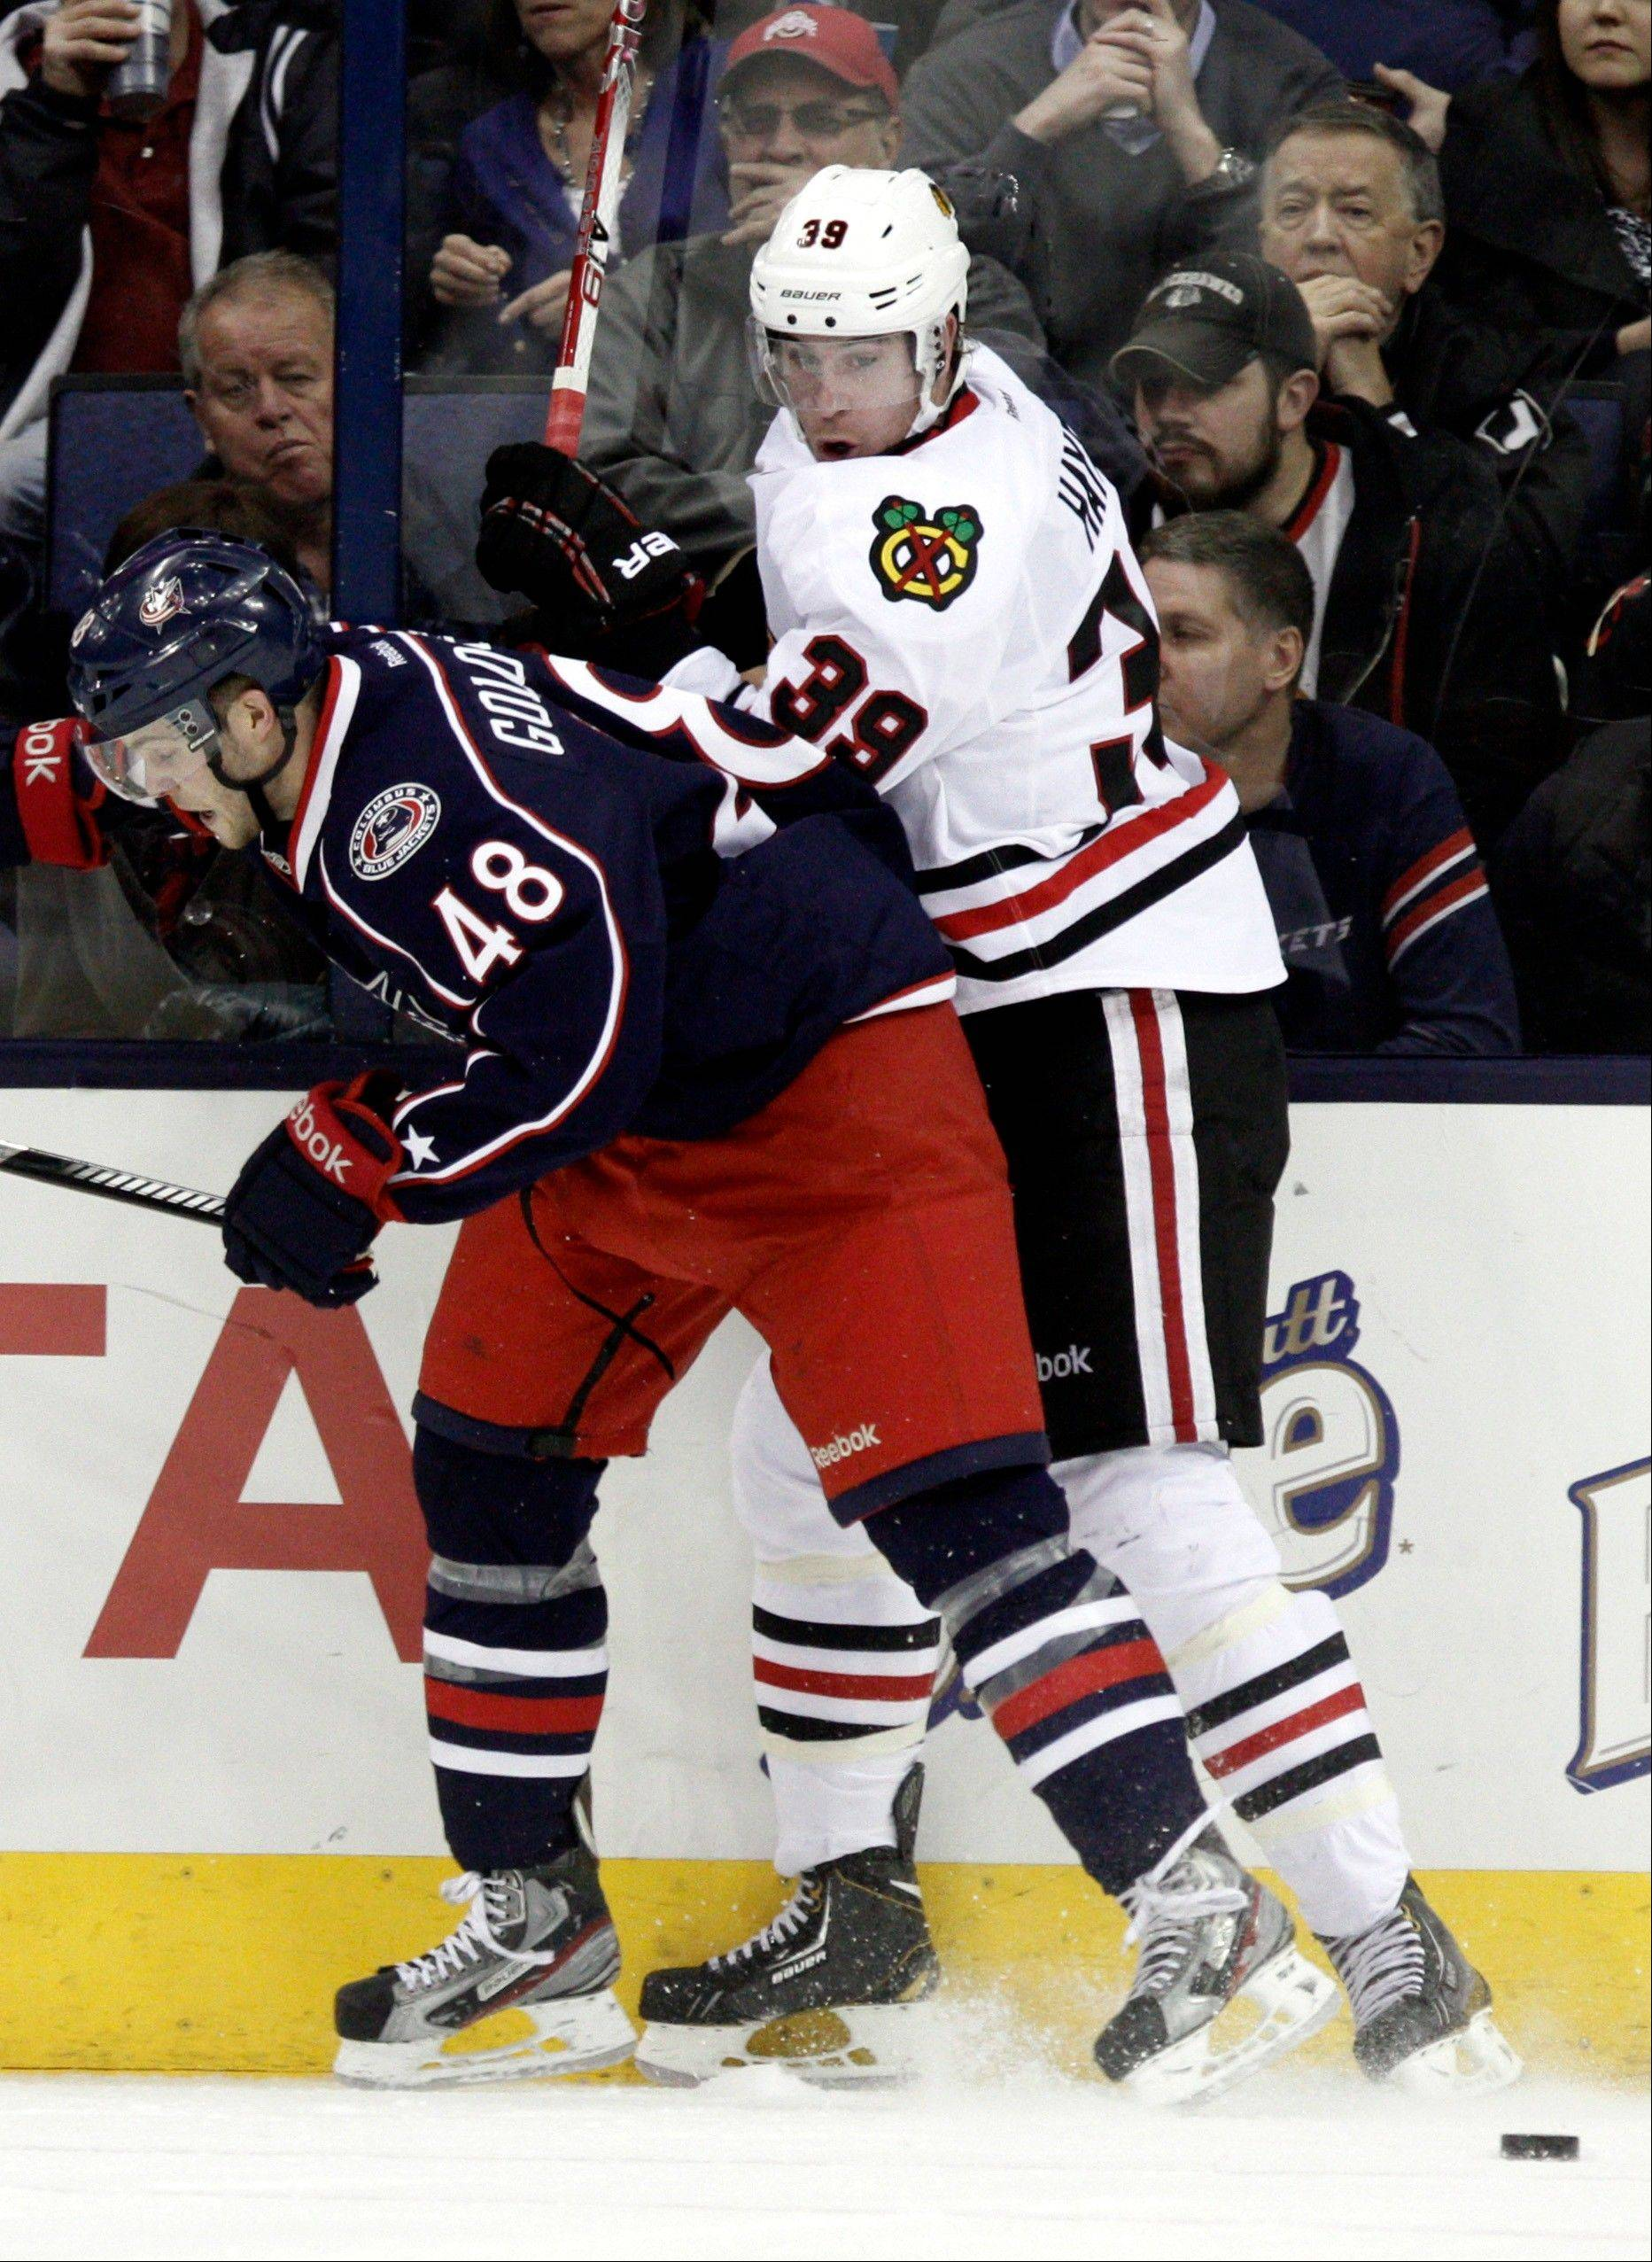 Columbus Blue Jackets' Cody Goloubef, left, and Chicago Blackhawks' Jimmy Hayes work for the puck in the second period.